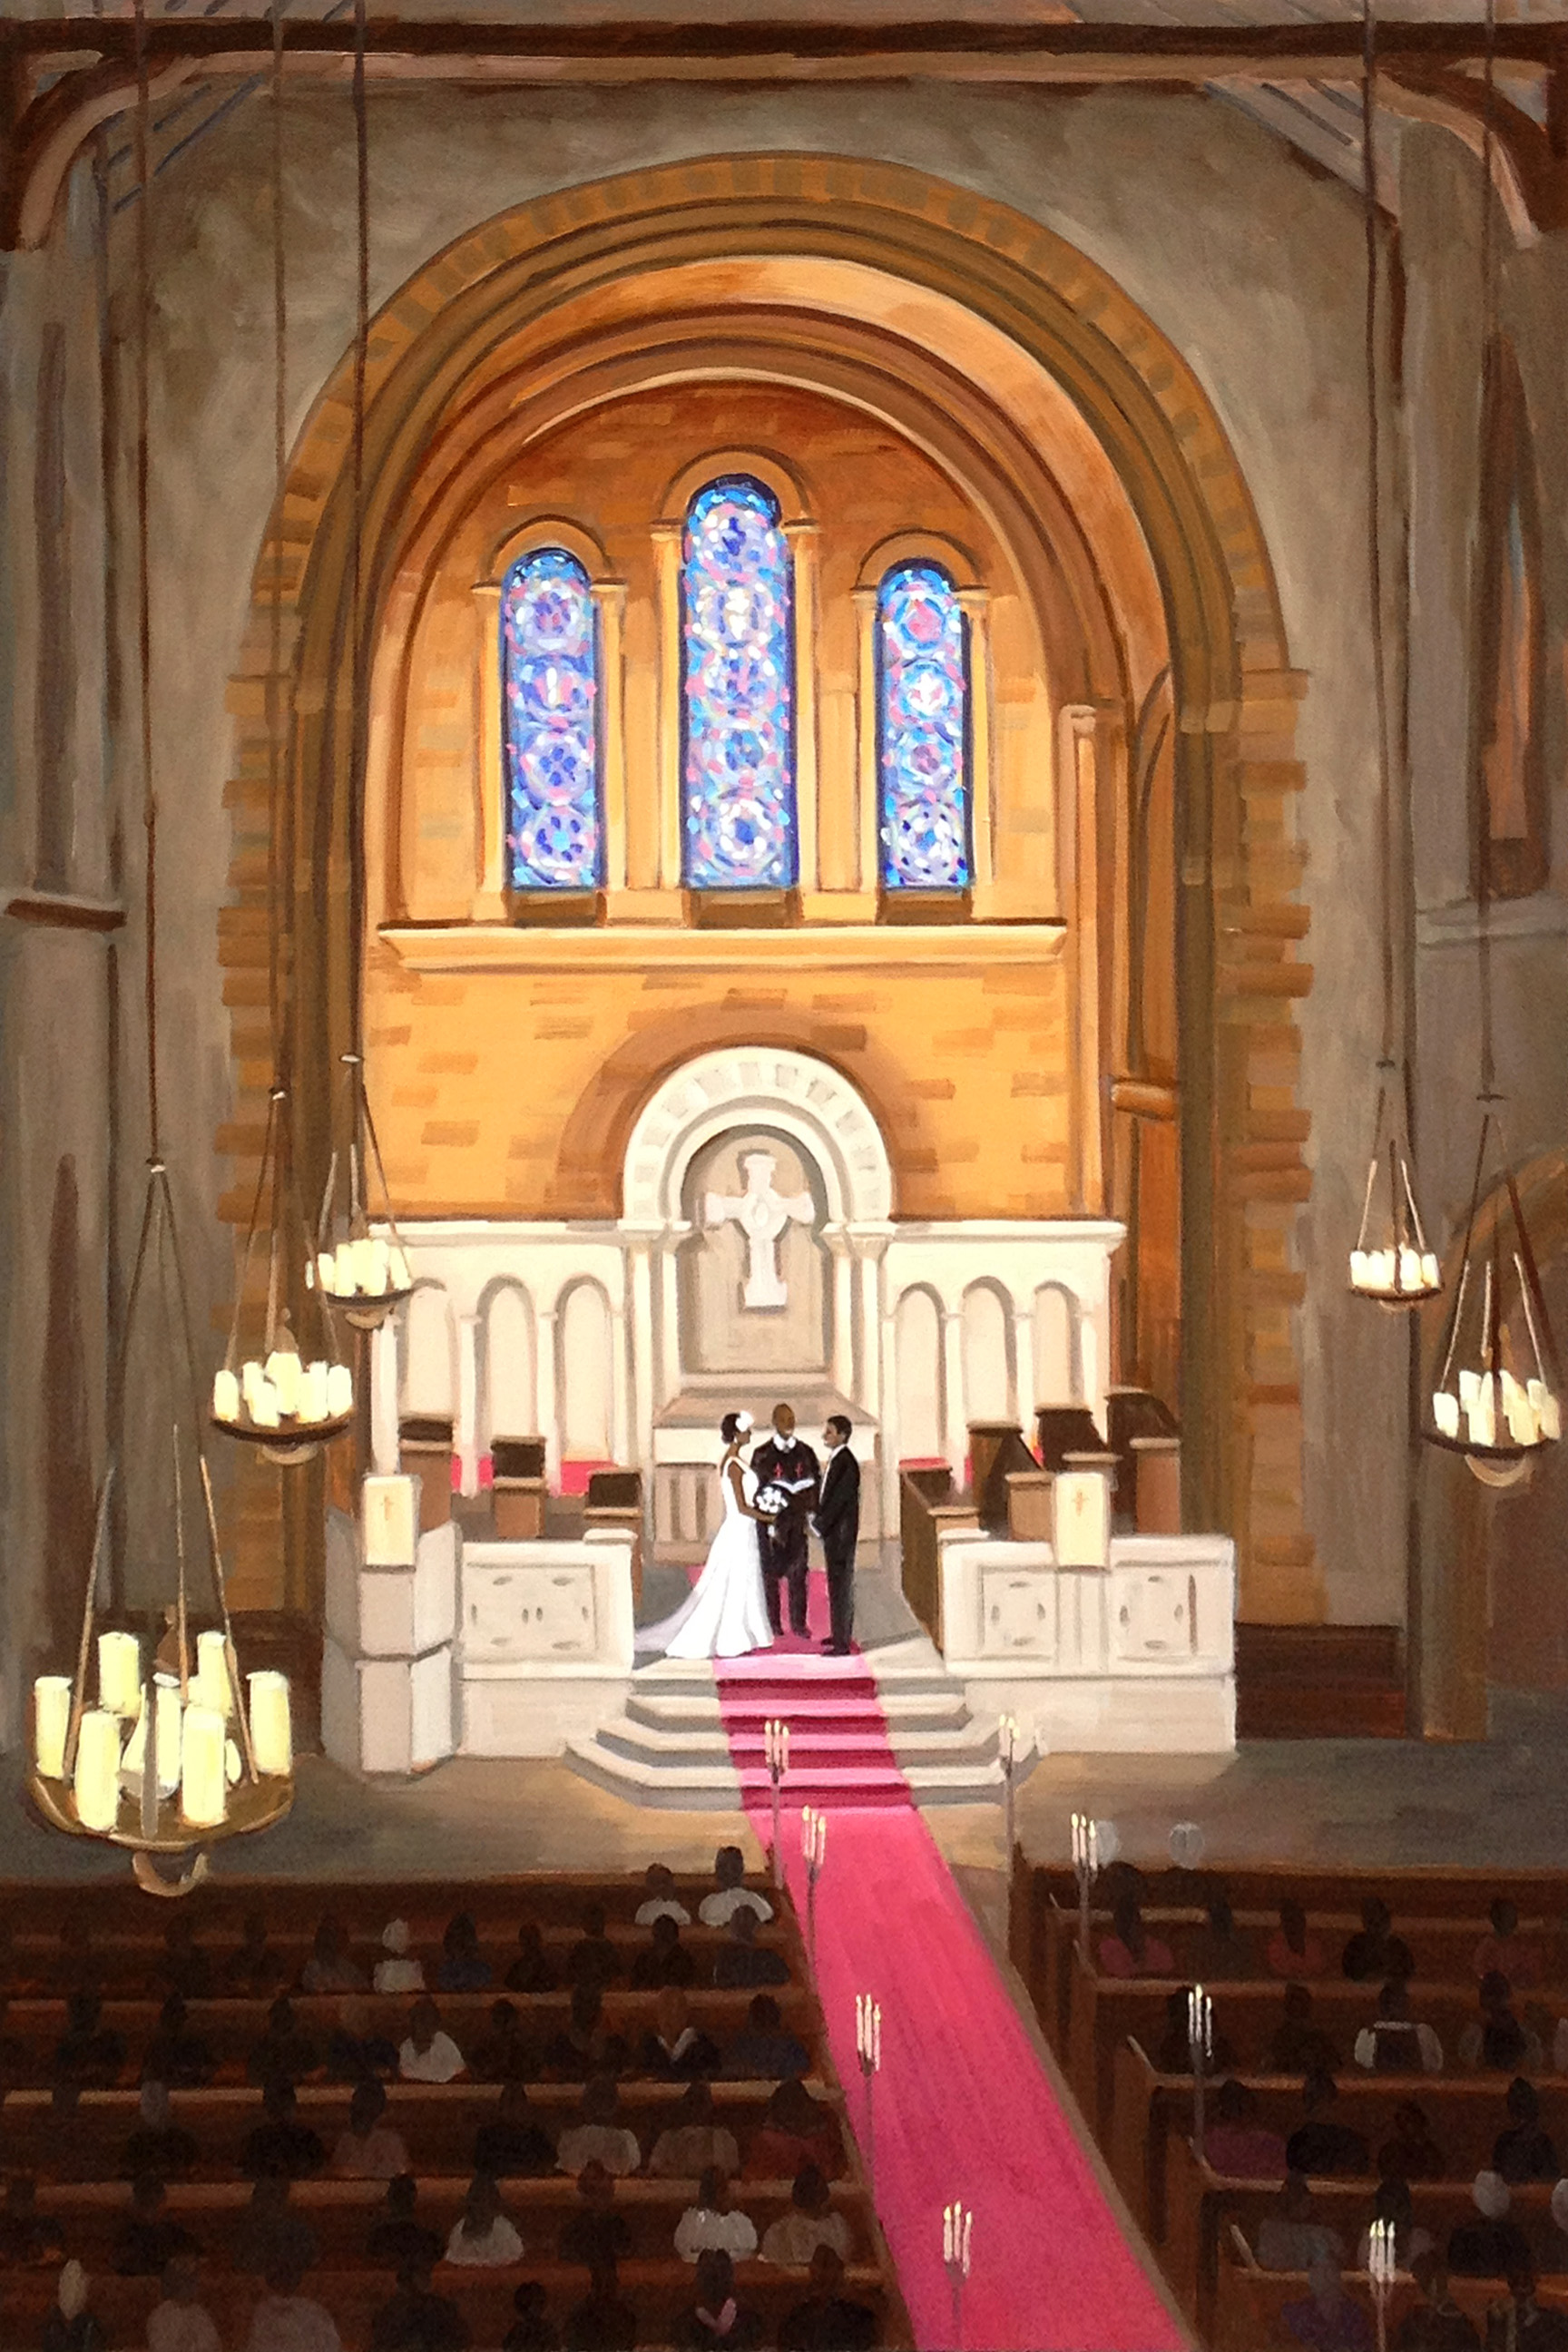 Universalist-National-Memorial-Church-Washington-DC-Live-Wedding-Painting-wedding-artist-ben-keys-of-wed-on-canvas